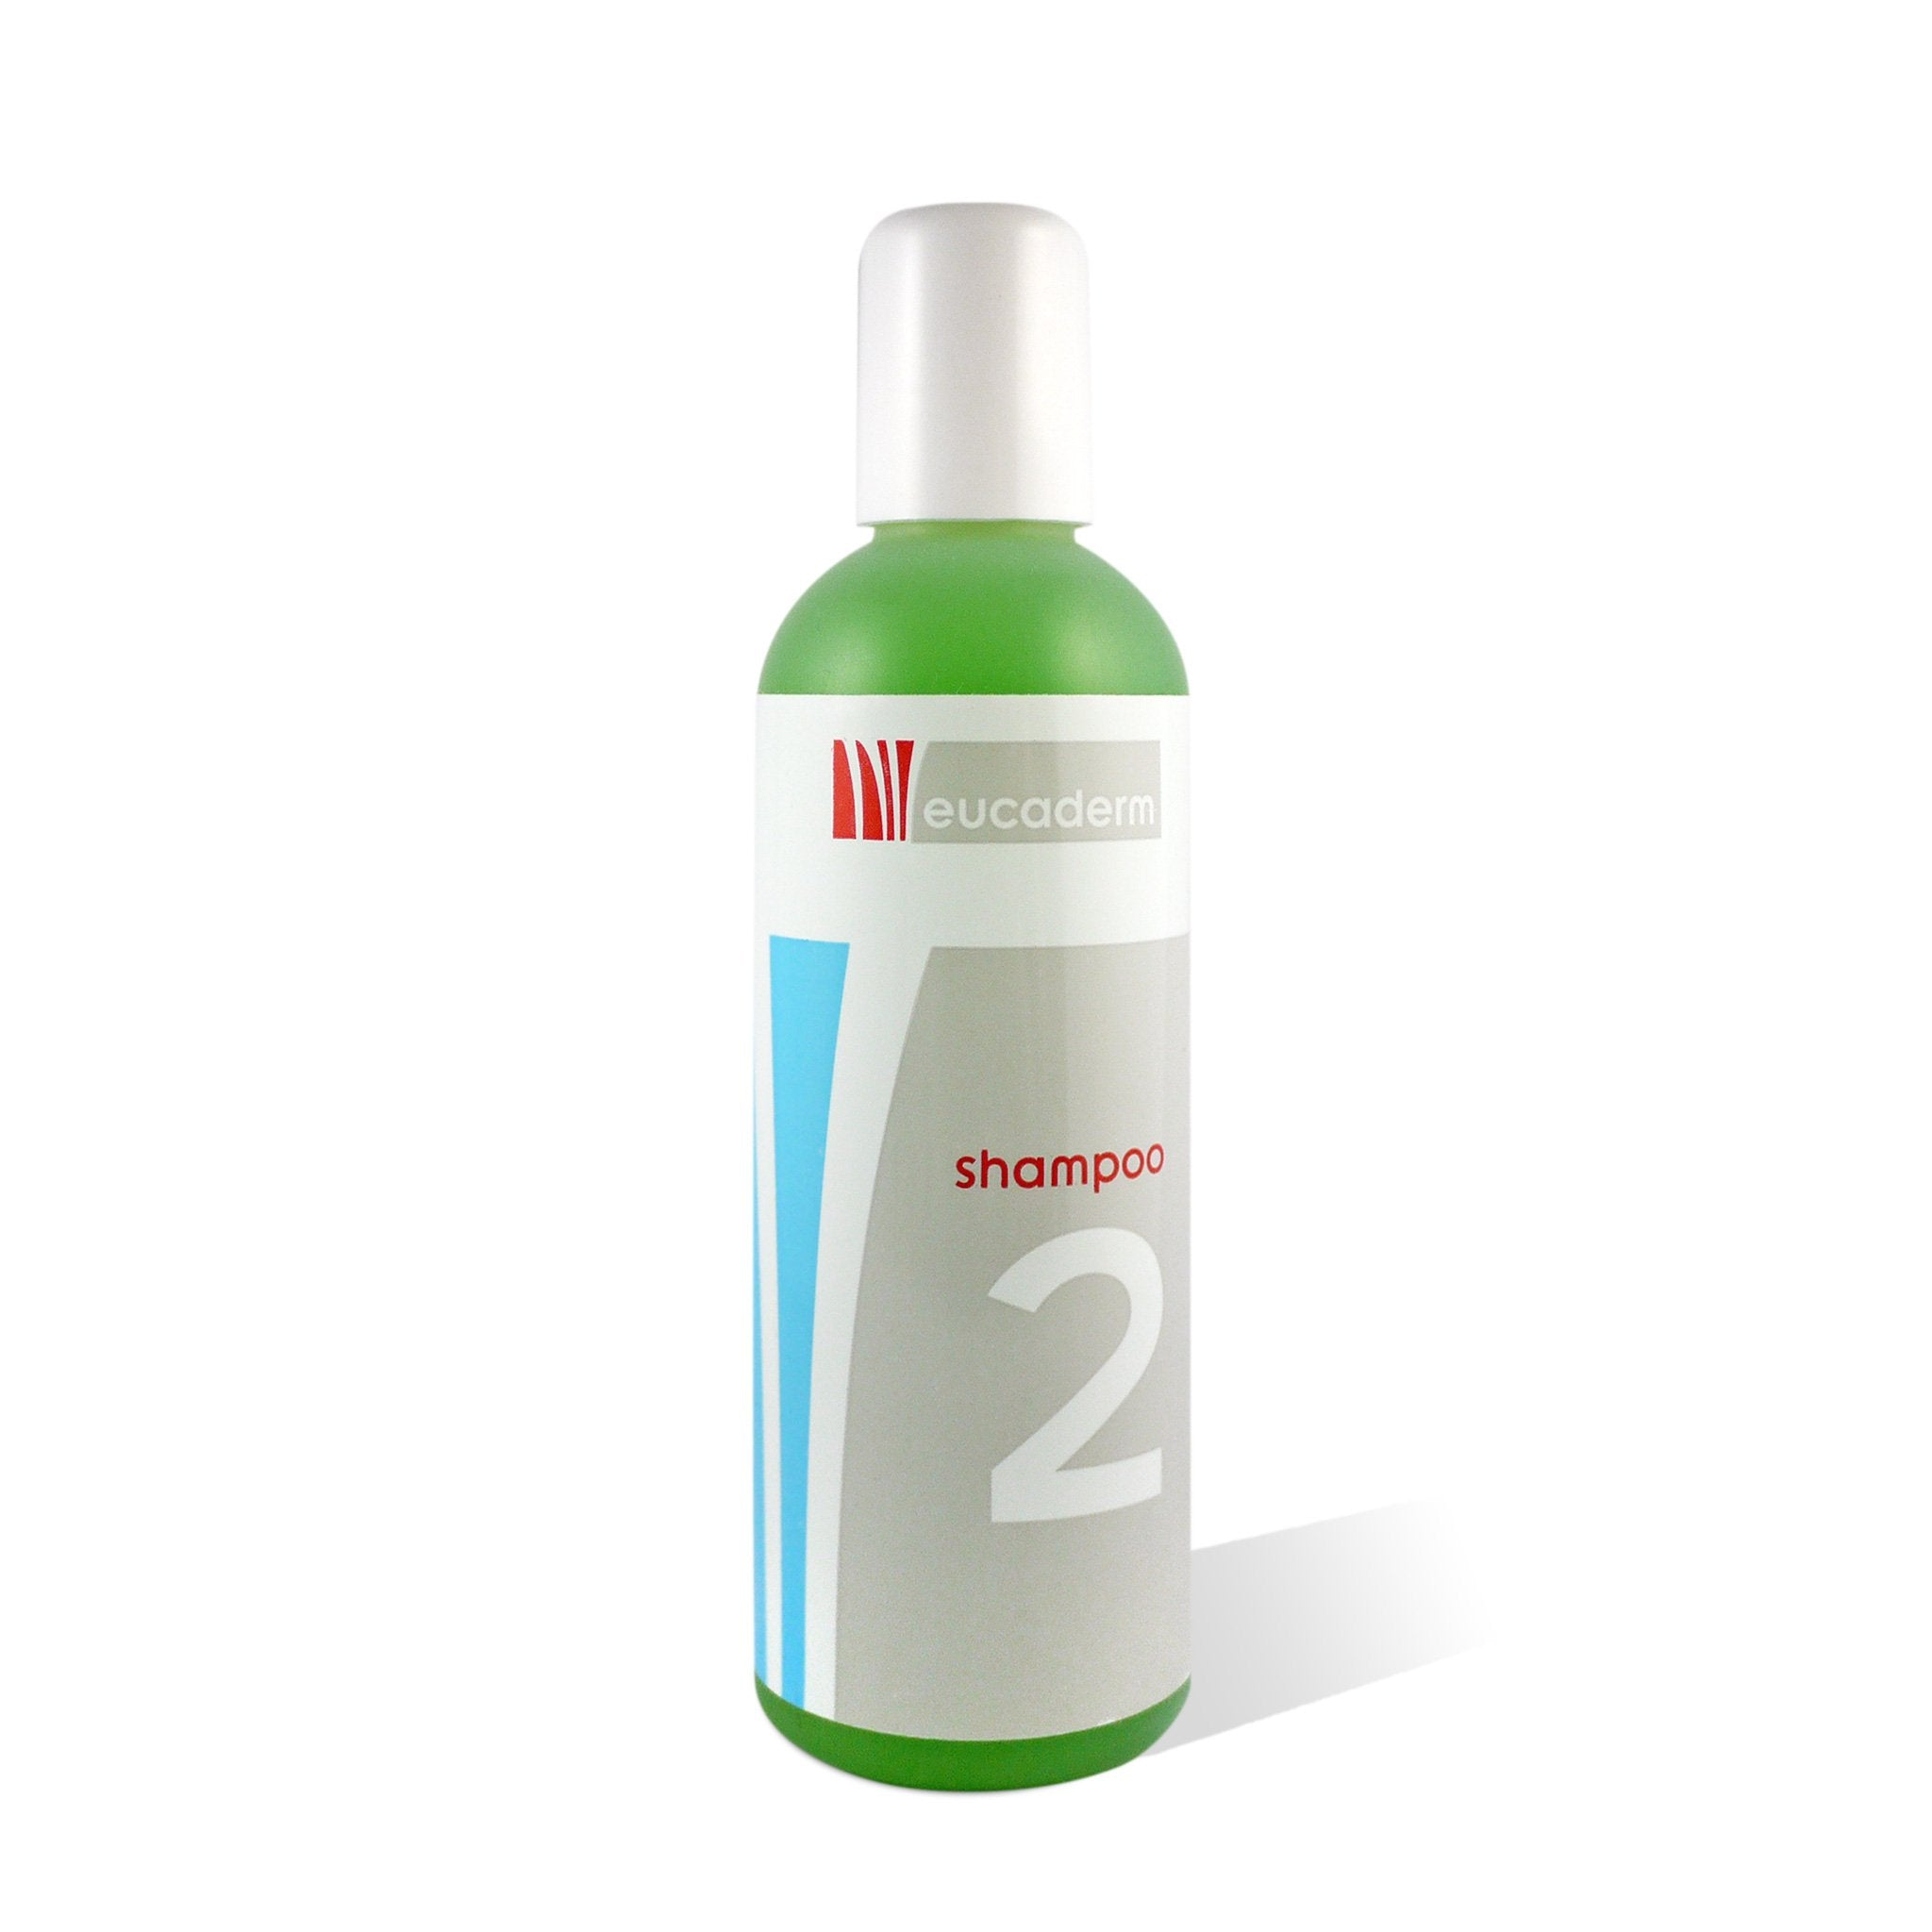 Eucaderm Shampoo No 2 (200ml)